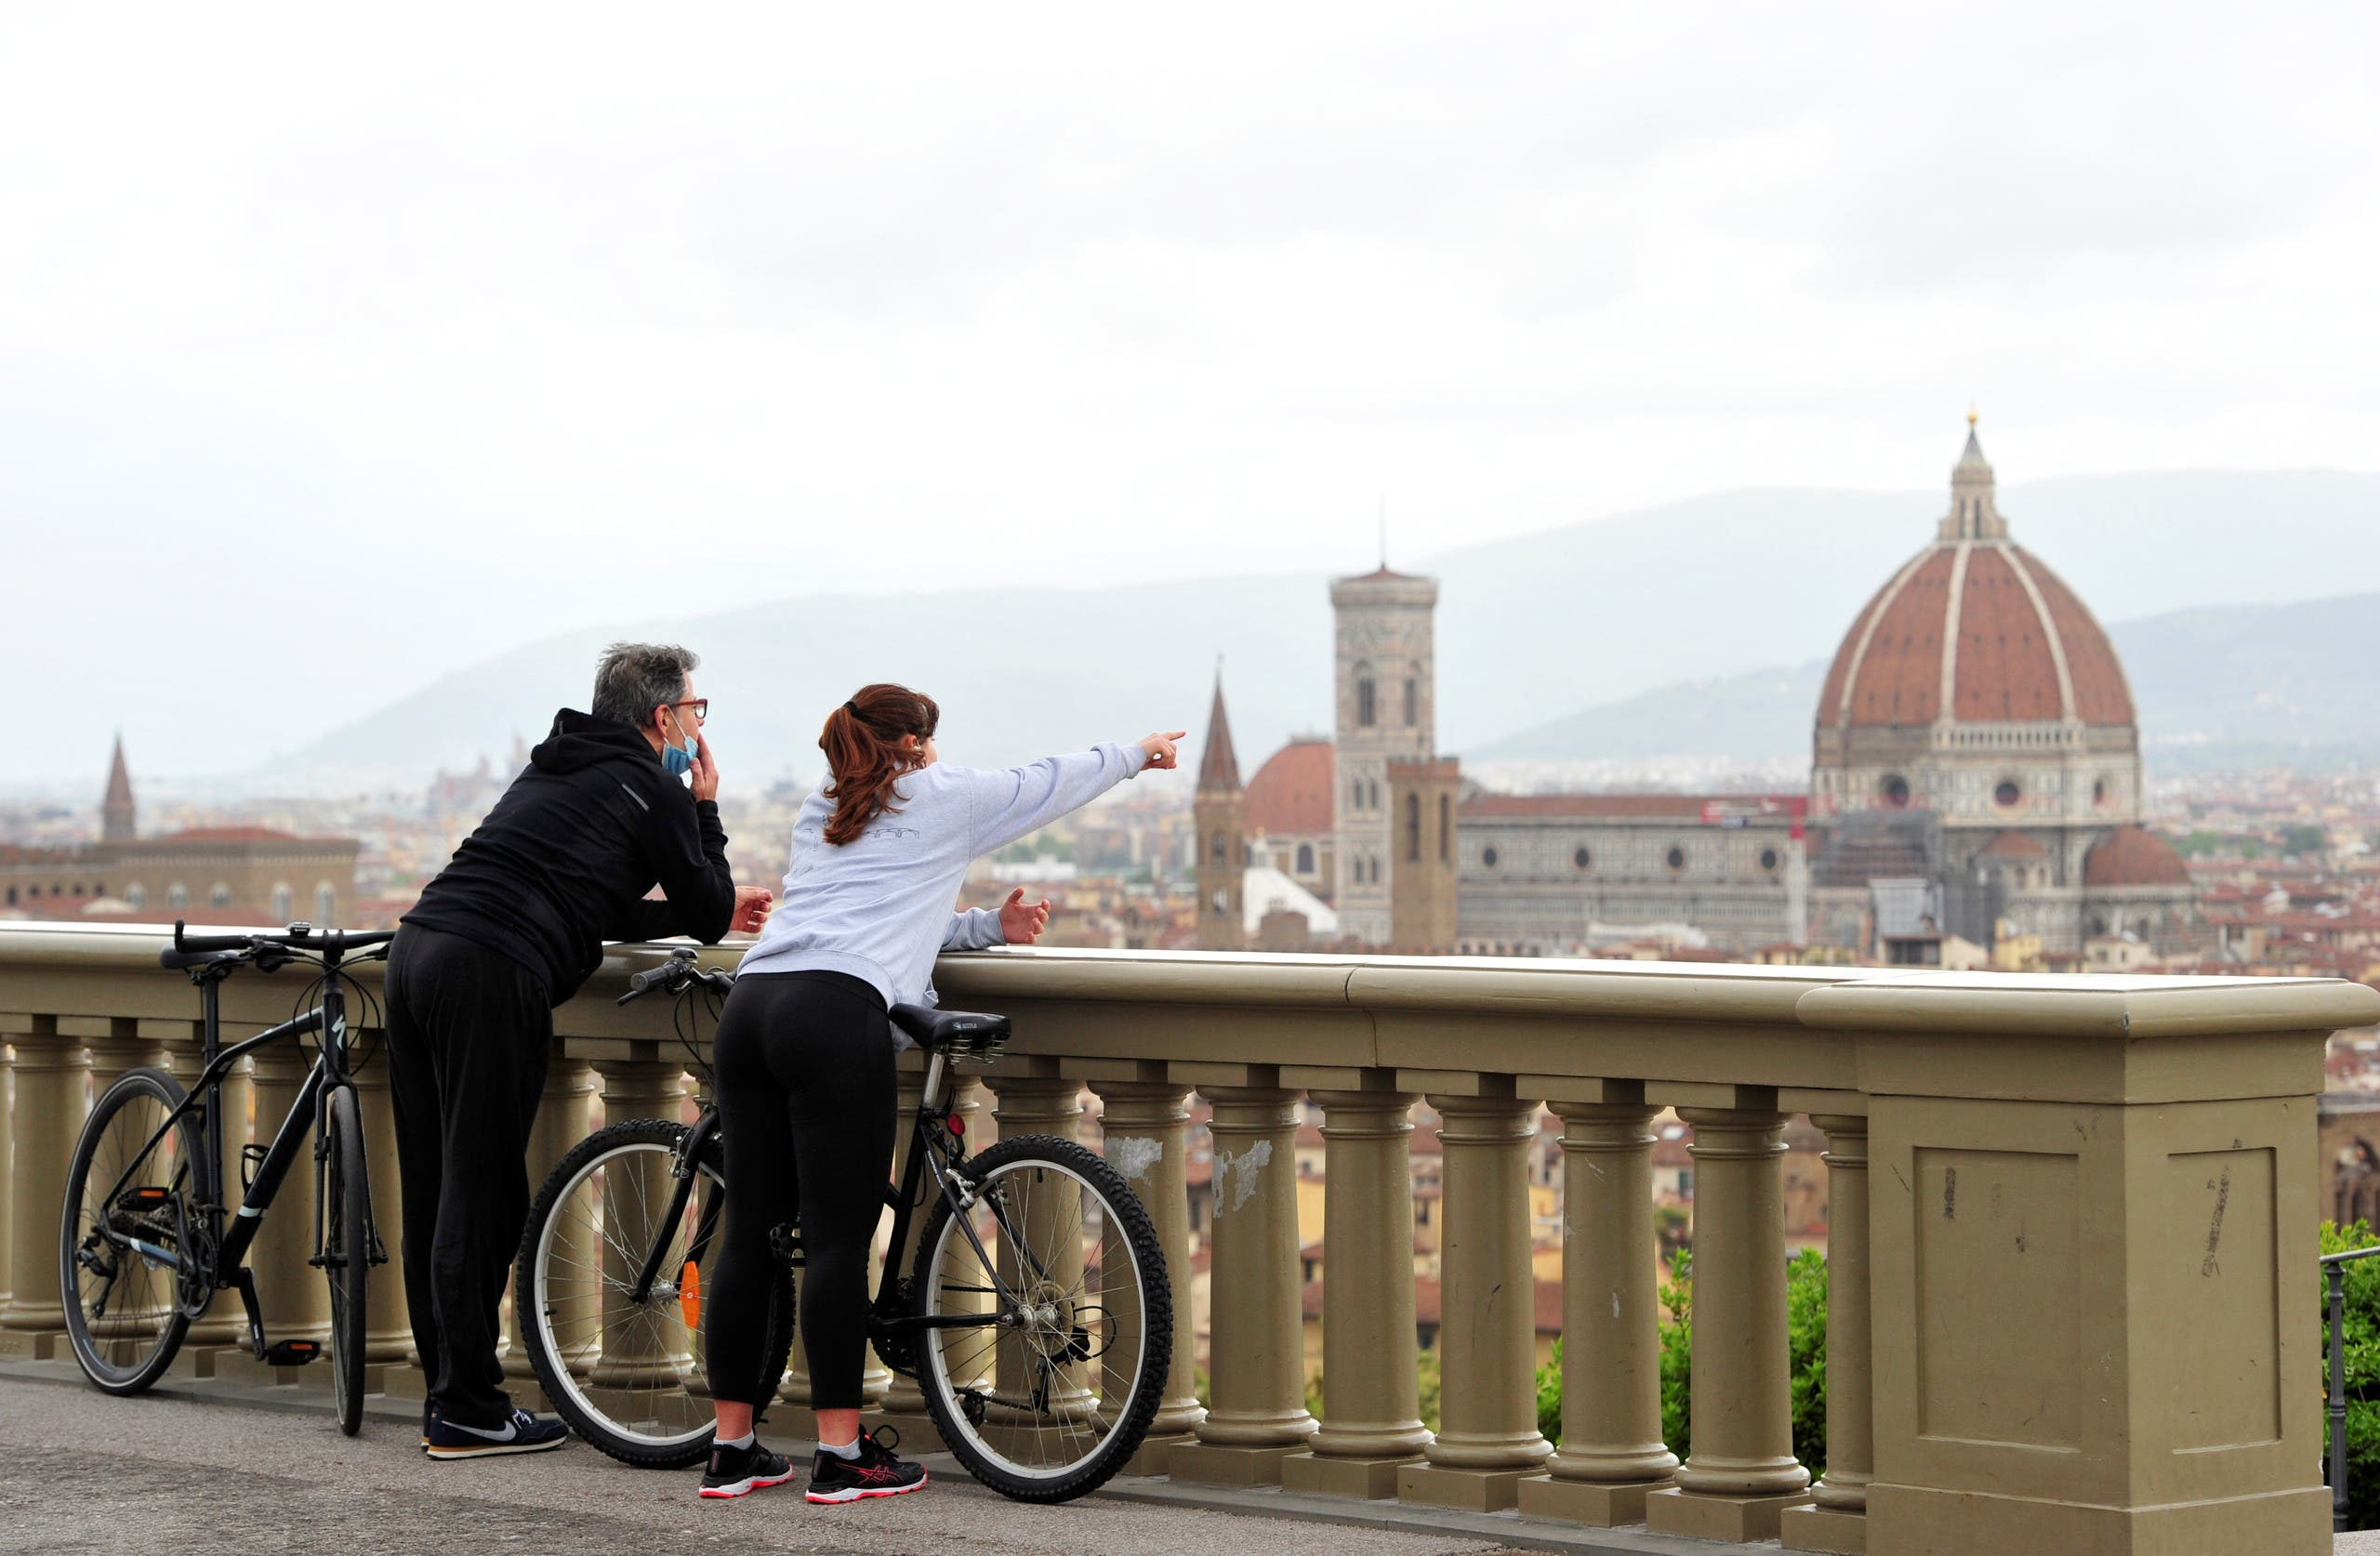 People enjoy the view of Florence from Piazzale Michelangelo during the lockdown, ahead of Italy's gradual lifting of restrictions which begins from May 4, in Florence. (File photo: Reuters)